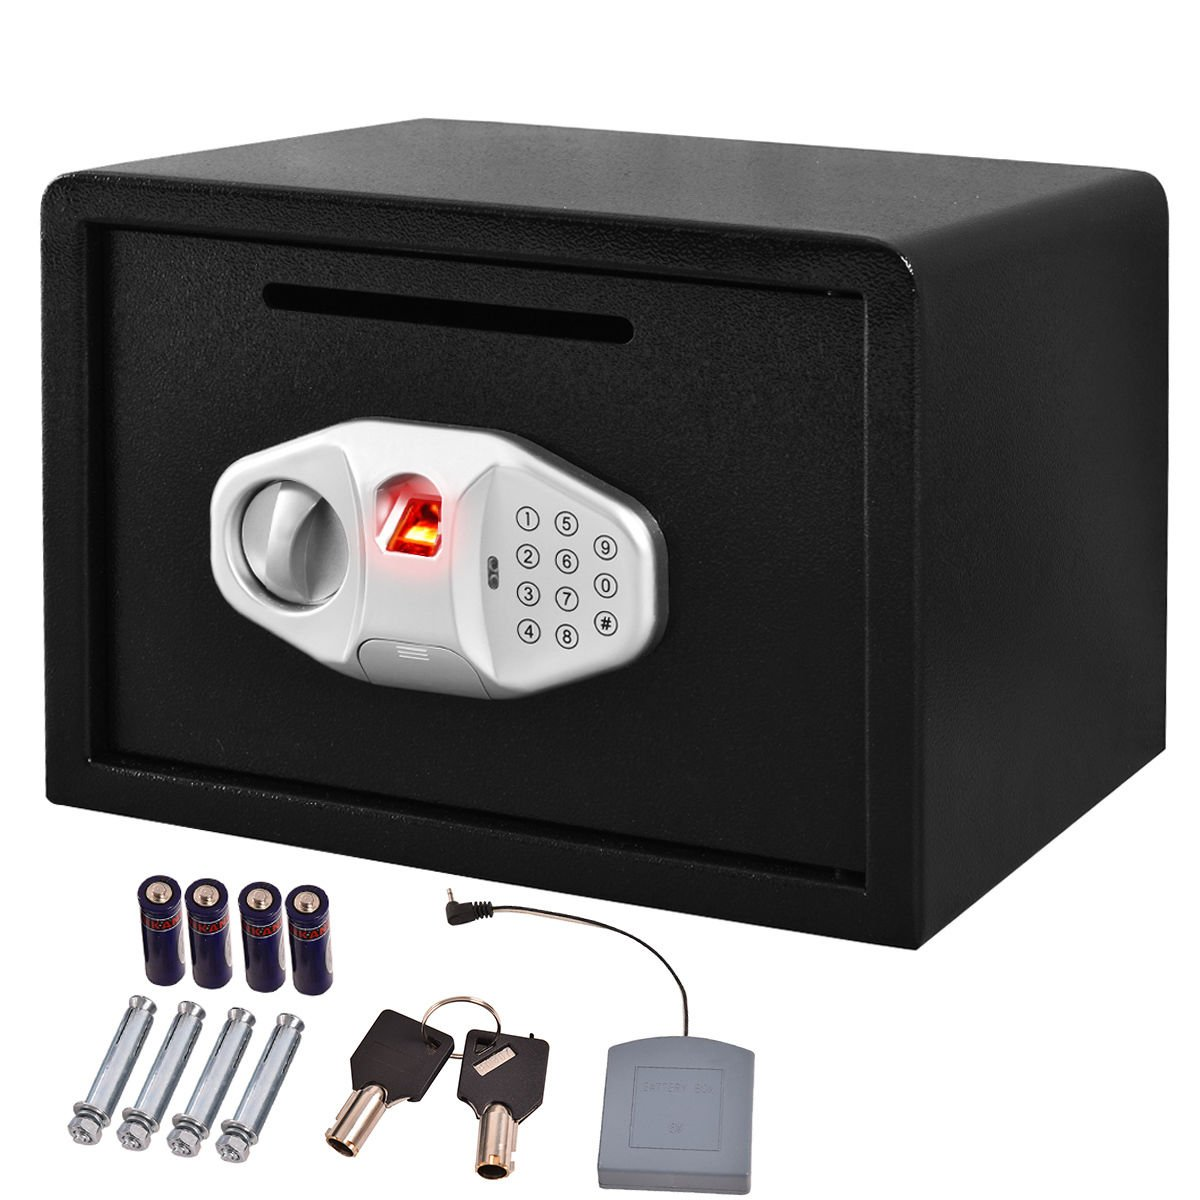 Safstar Cabinet Safes Biometric Fingerprint Electronic Digital Keypad Lock Security Box for Cash Jewelry Passport Guns Collectibles (FS Fingerprint: 9.8'' x 13.7'' x 9.8'') by S AFSTAR